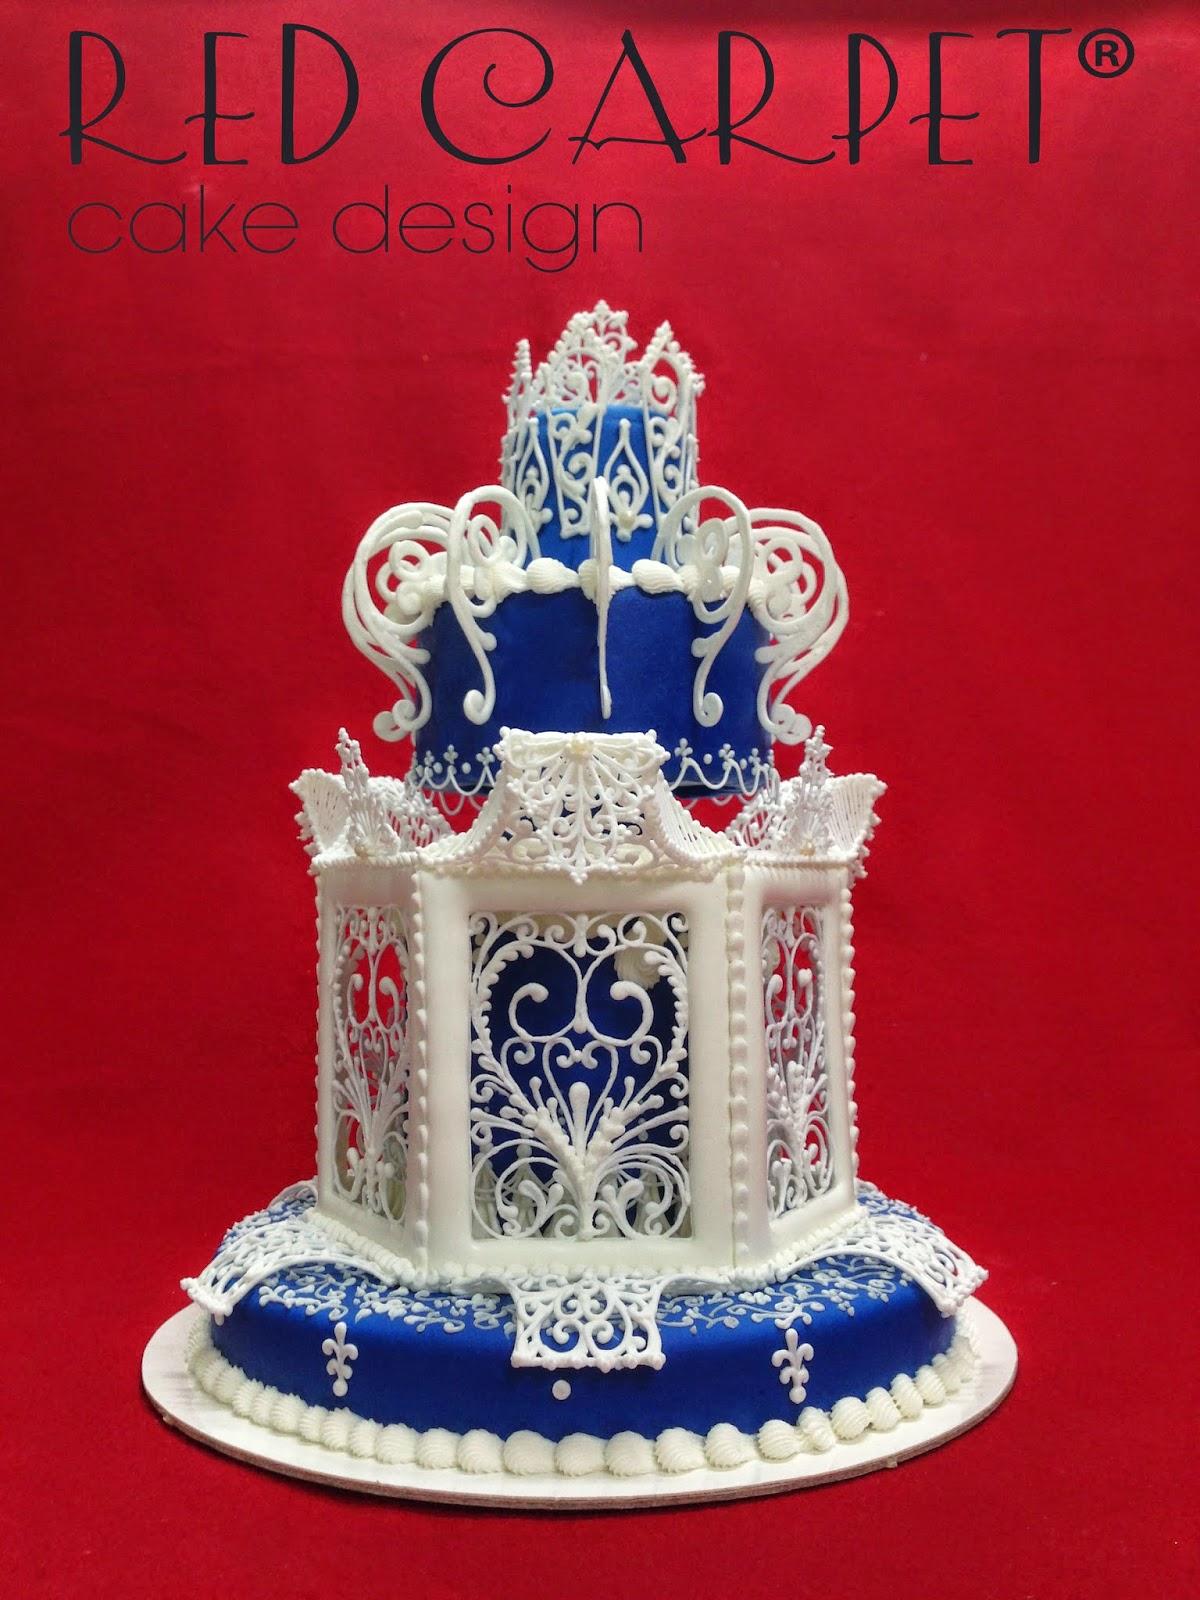 Imperial Blue Cake Sigep 2015 By Red Carpet Cake Design Red